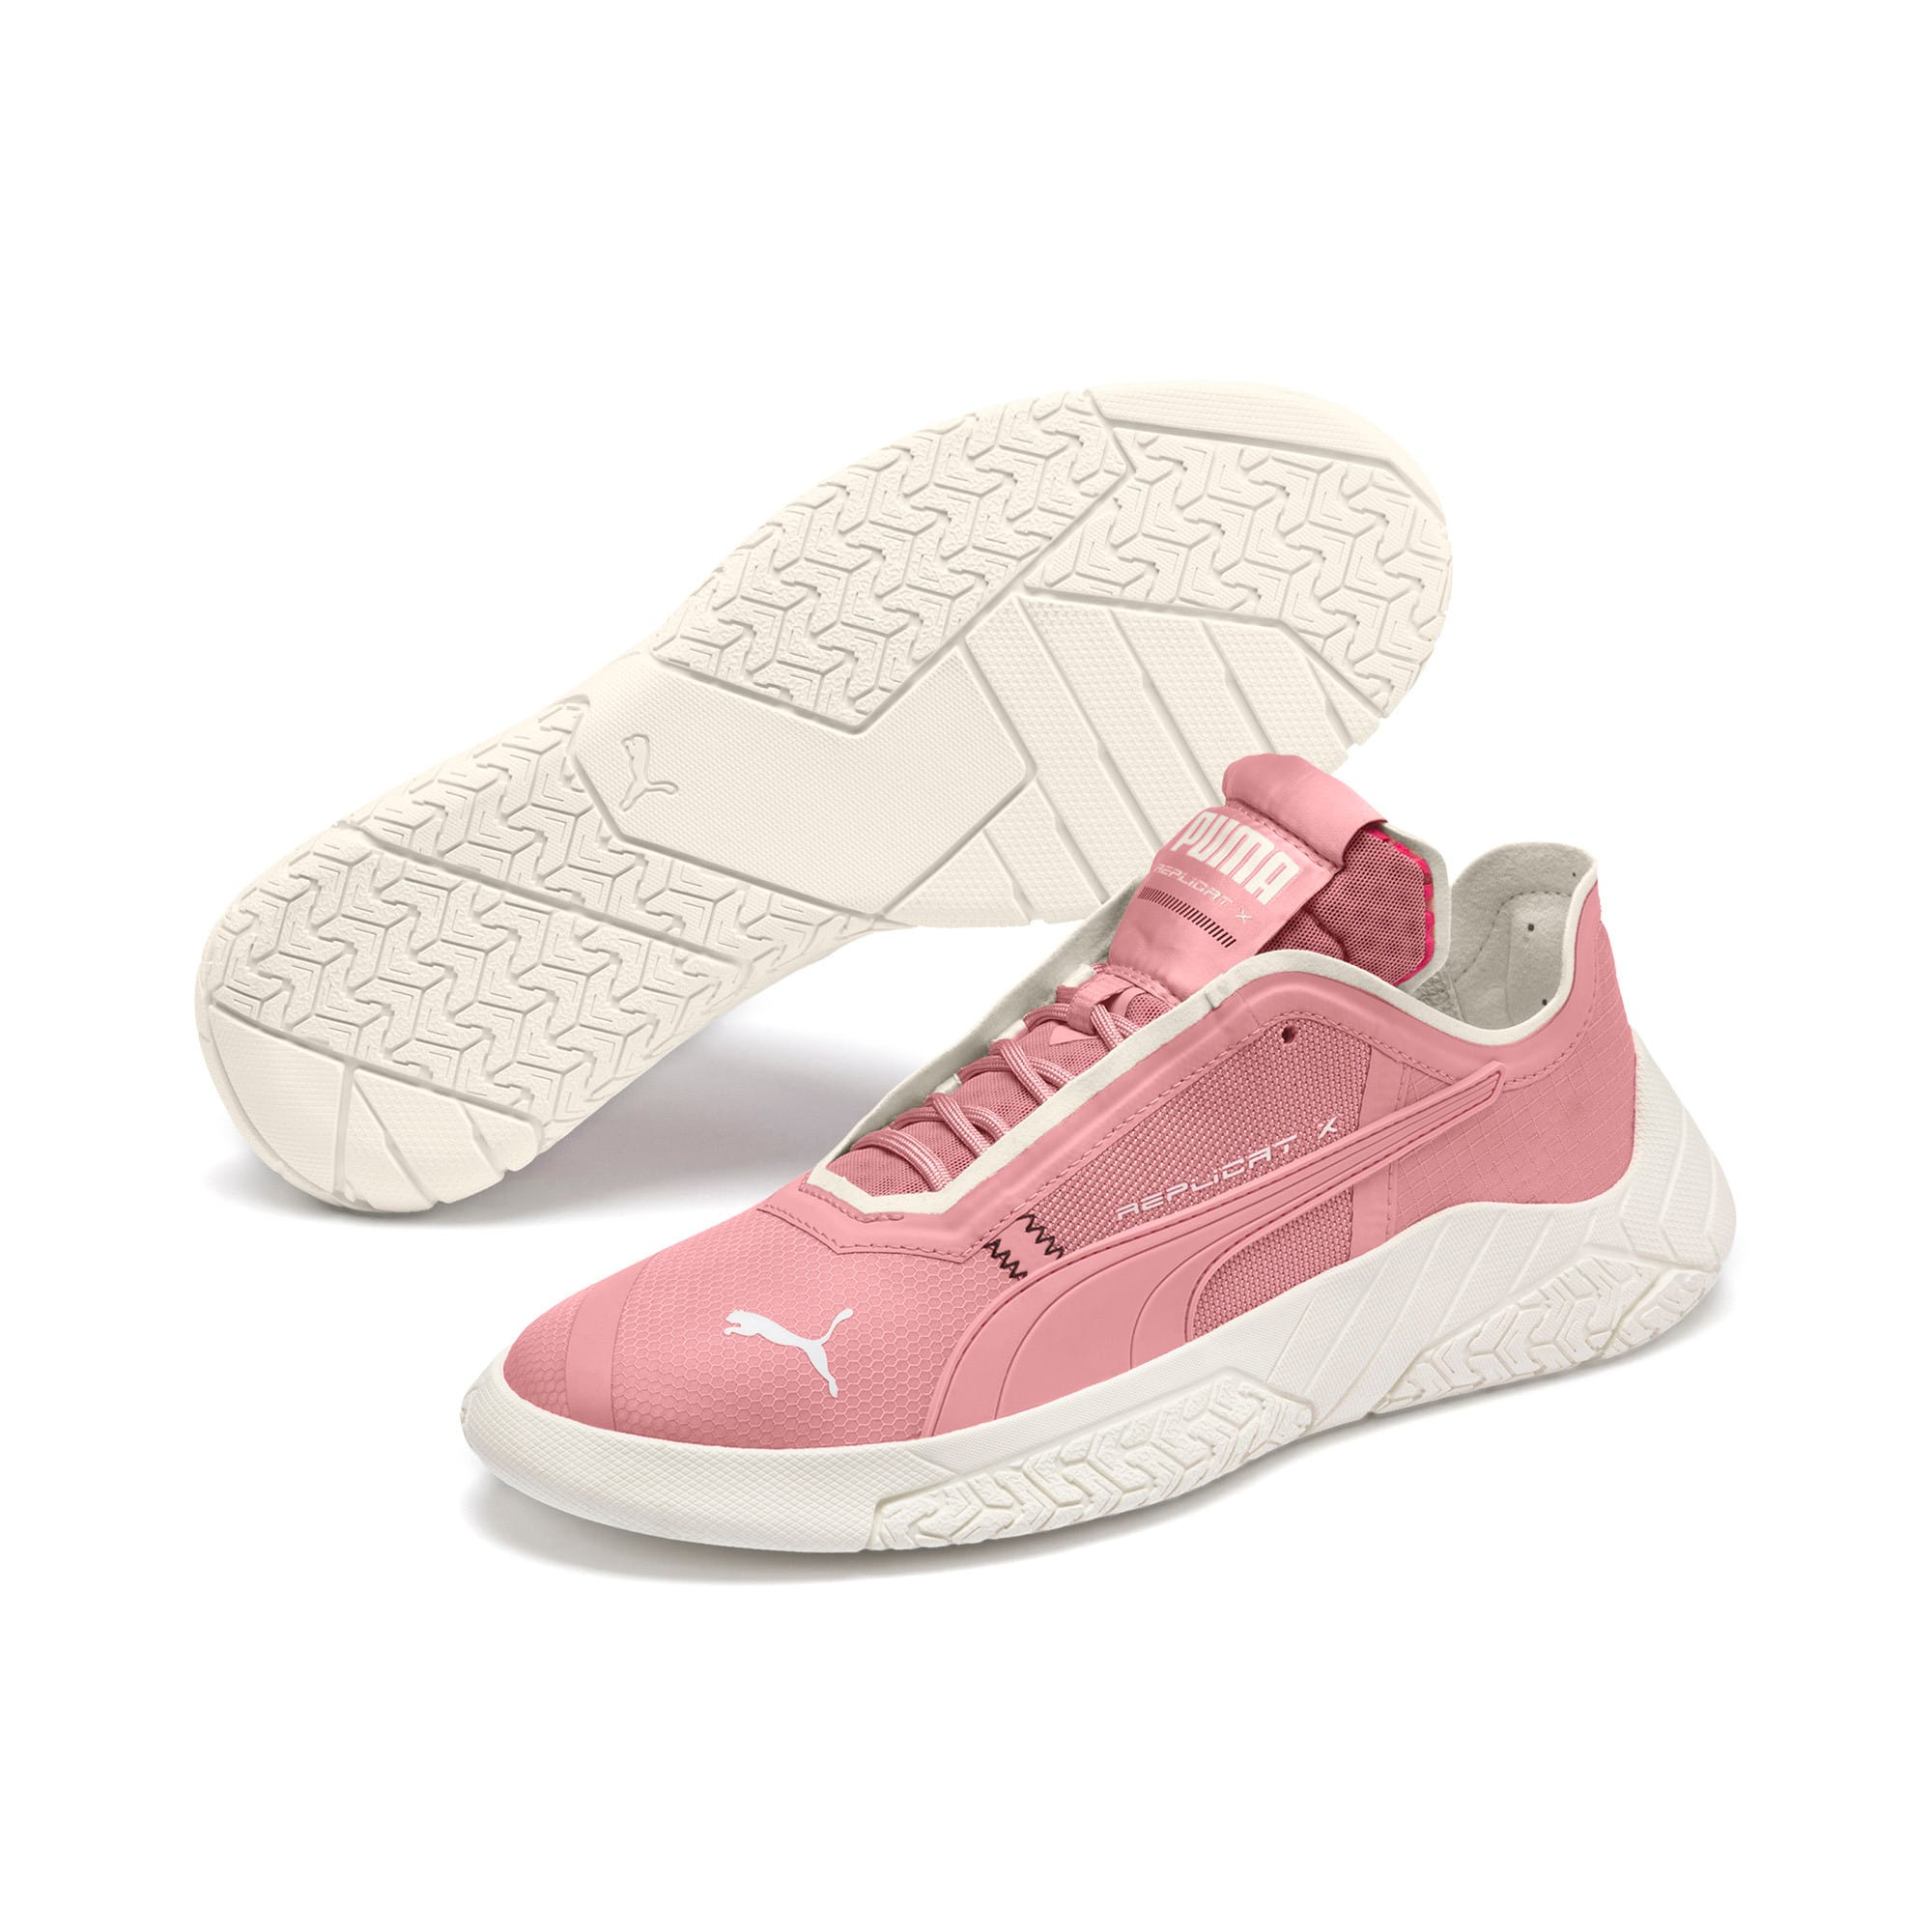 Thumbnail 2 of Replicat-X Circuit Motorsport Shoes, Bridal Rose-Whisper White, medium